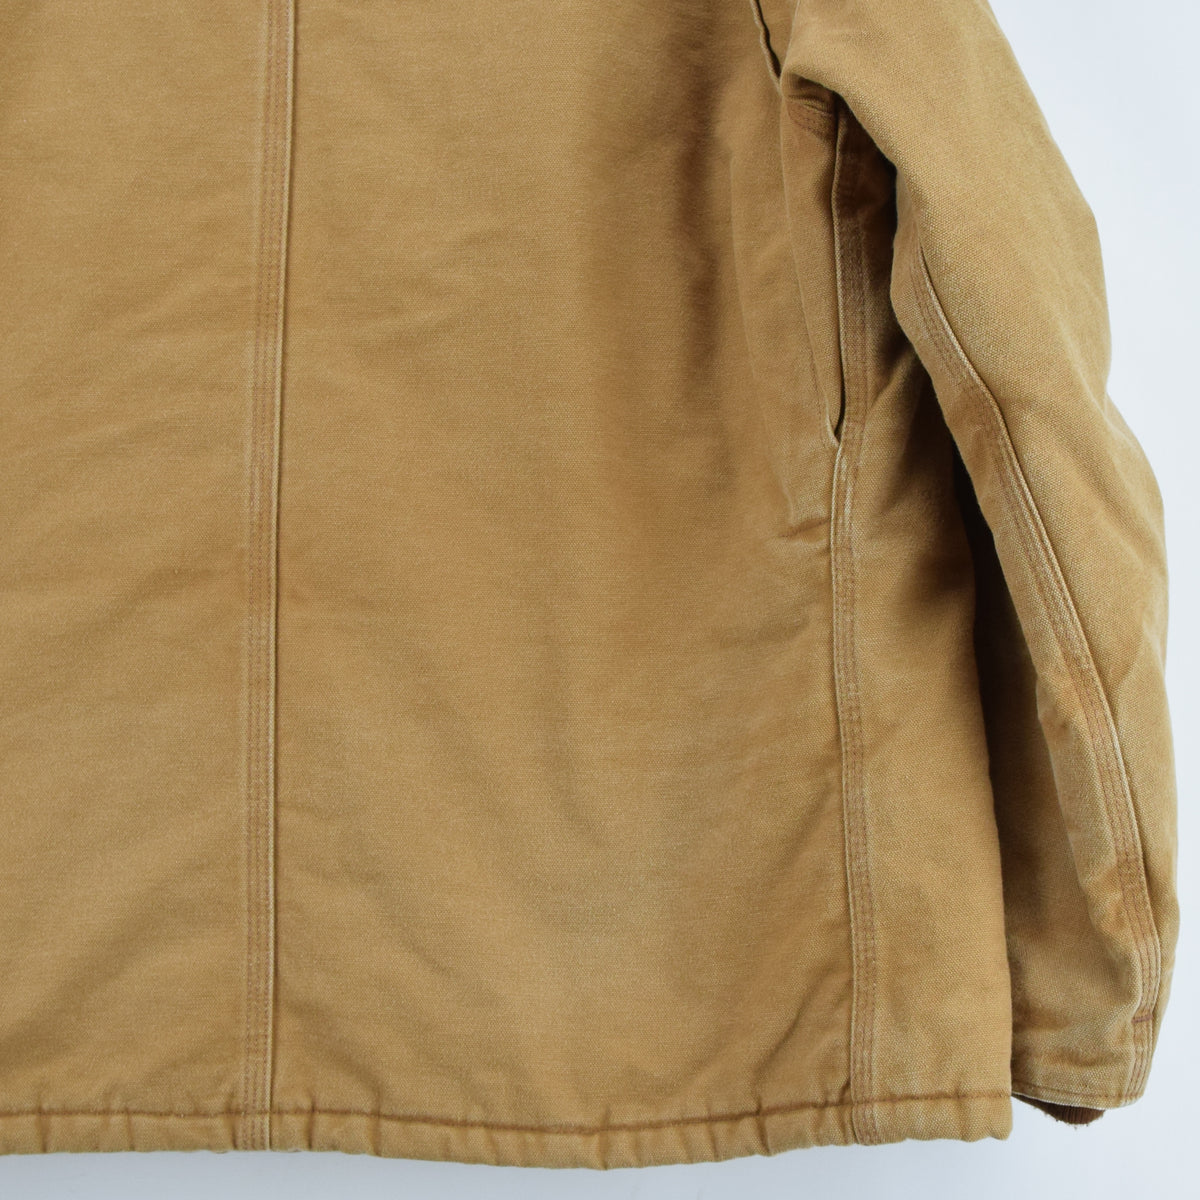 Vintage Carhartt Duck Canvas Tan Brown Worker Chore Jacket Made in USA XXL back hem